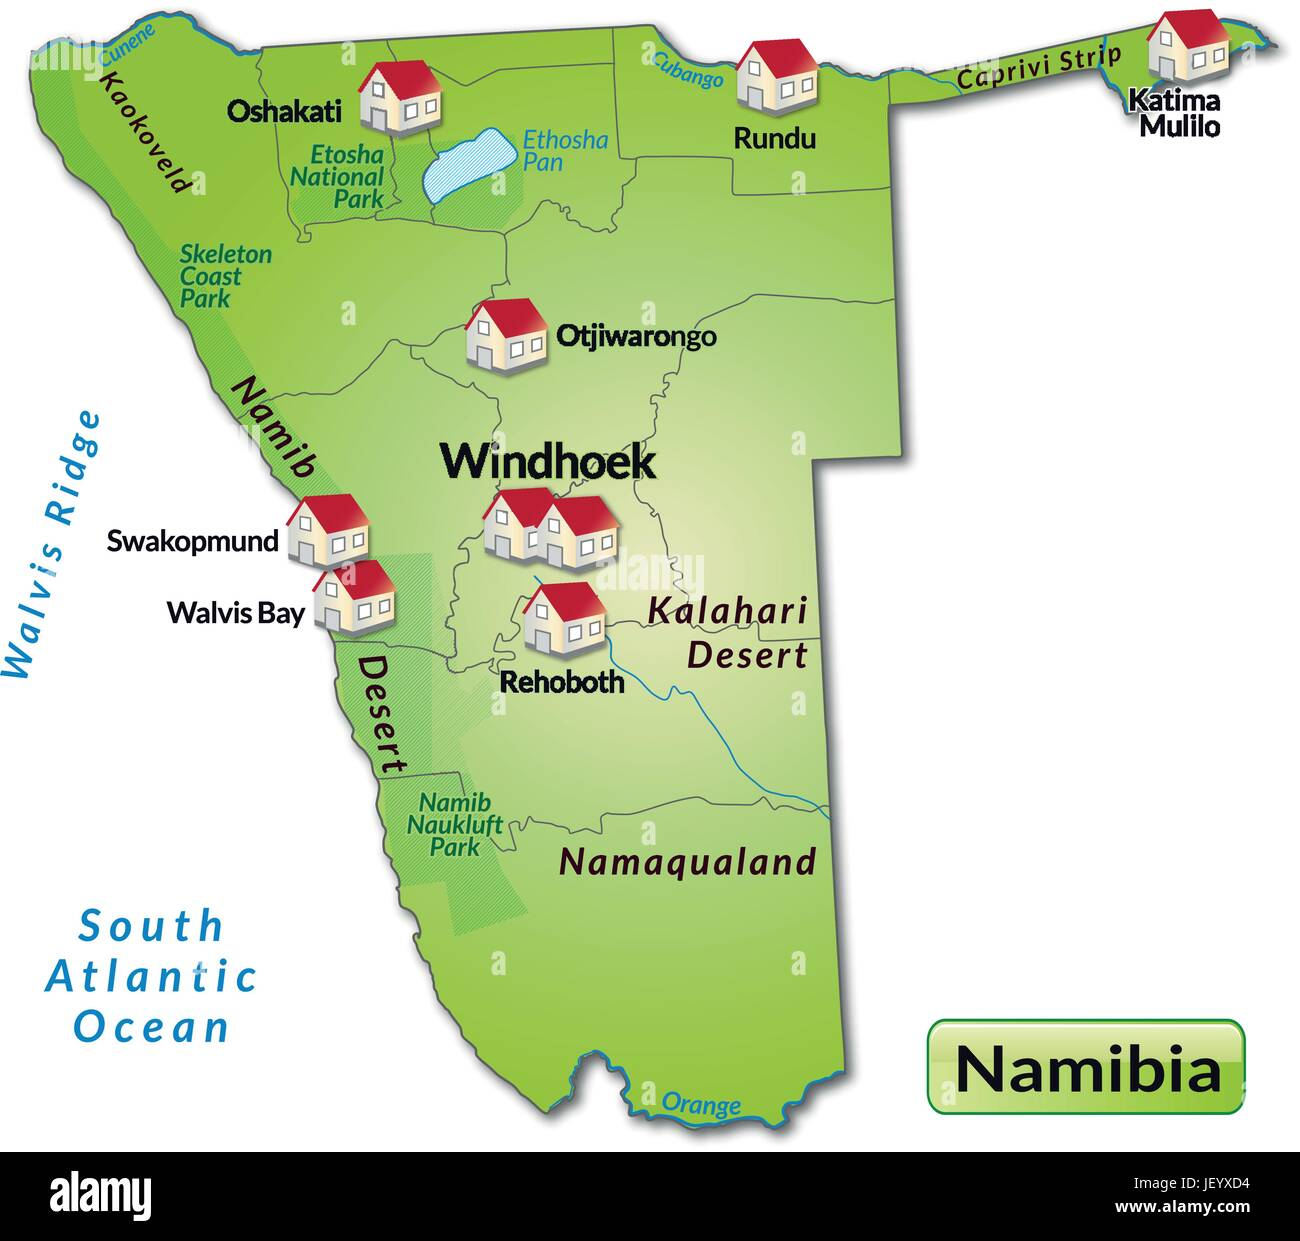 Namibia Card Outline Borders Atlas Map Of The World Map